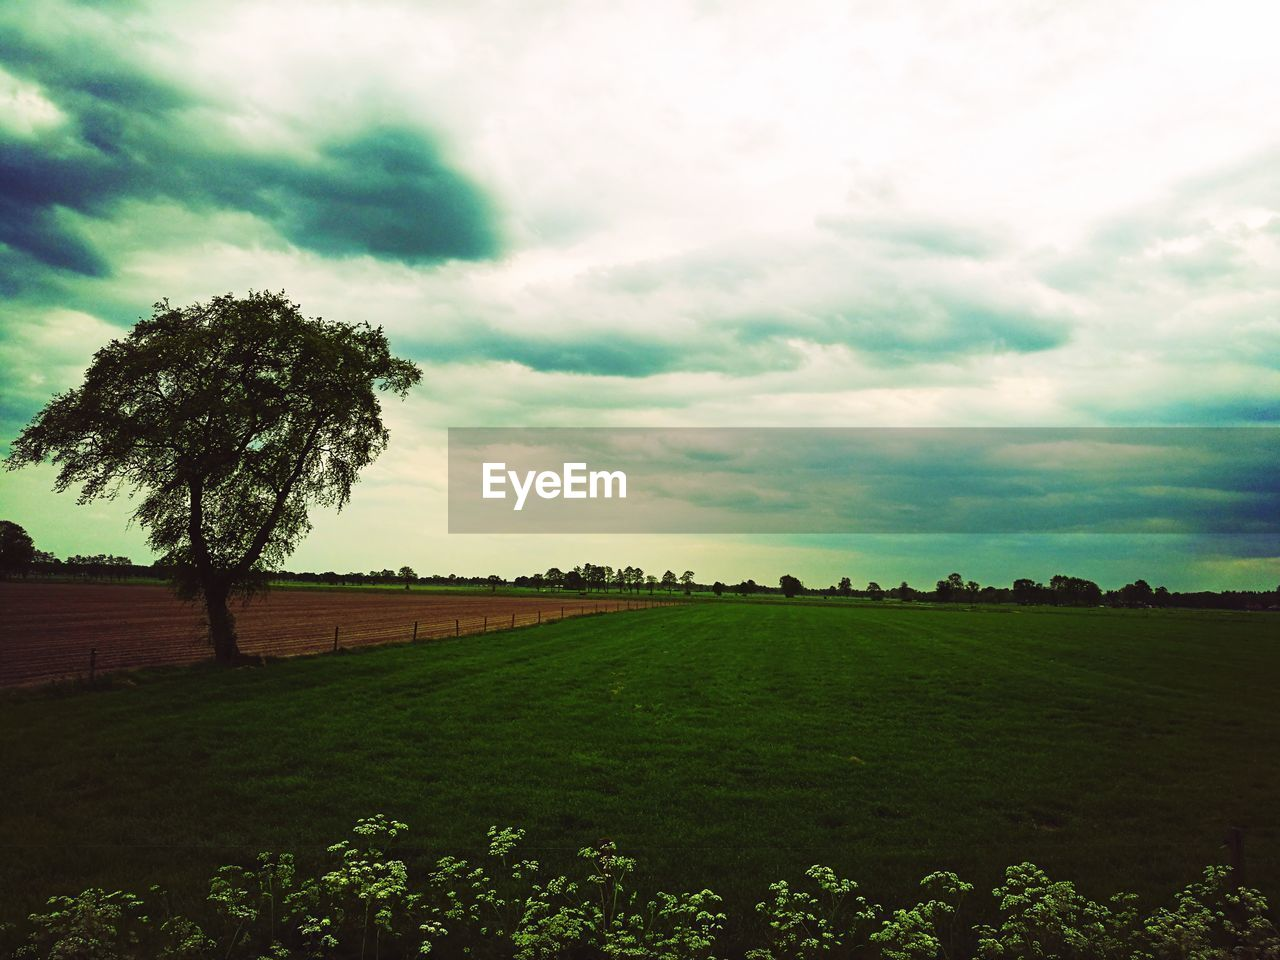 tree, field, landscape, tranquility, agriculture, tranquil scene, rural scene, beauty in nature, nature, cloud - sky, sky, scenics, day, no people, growth, grass, outdoors